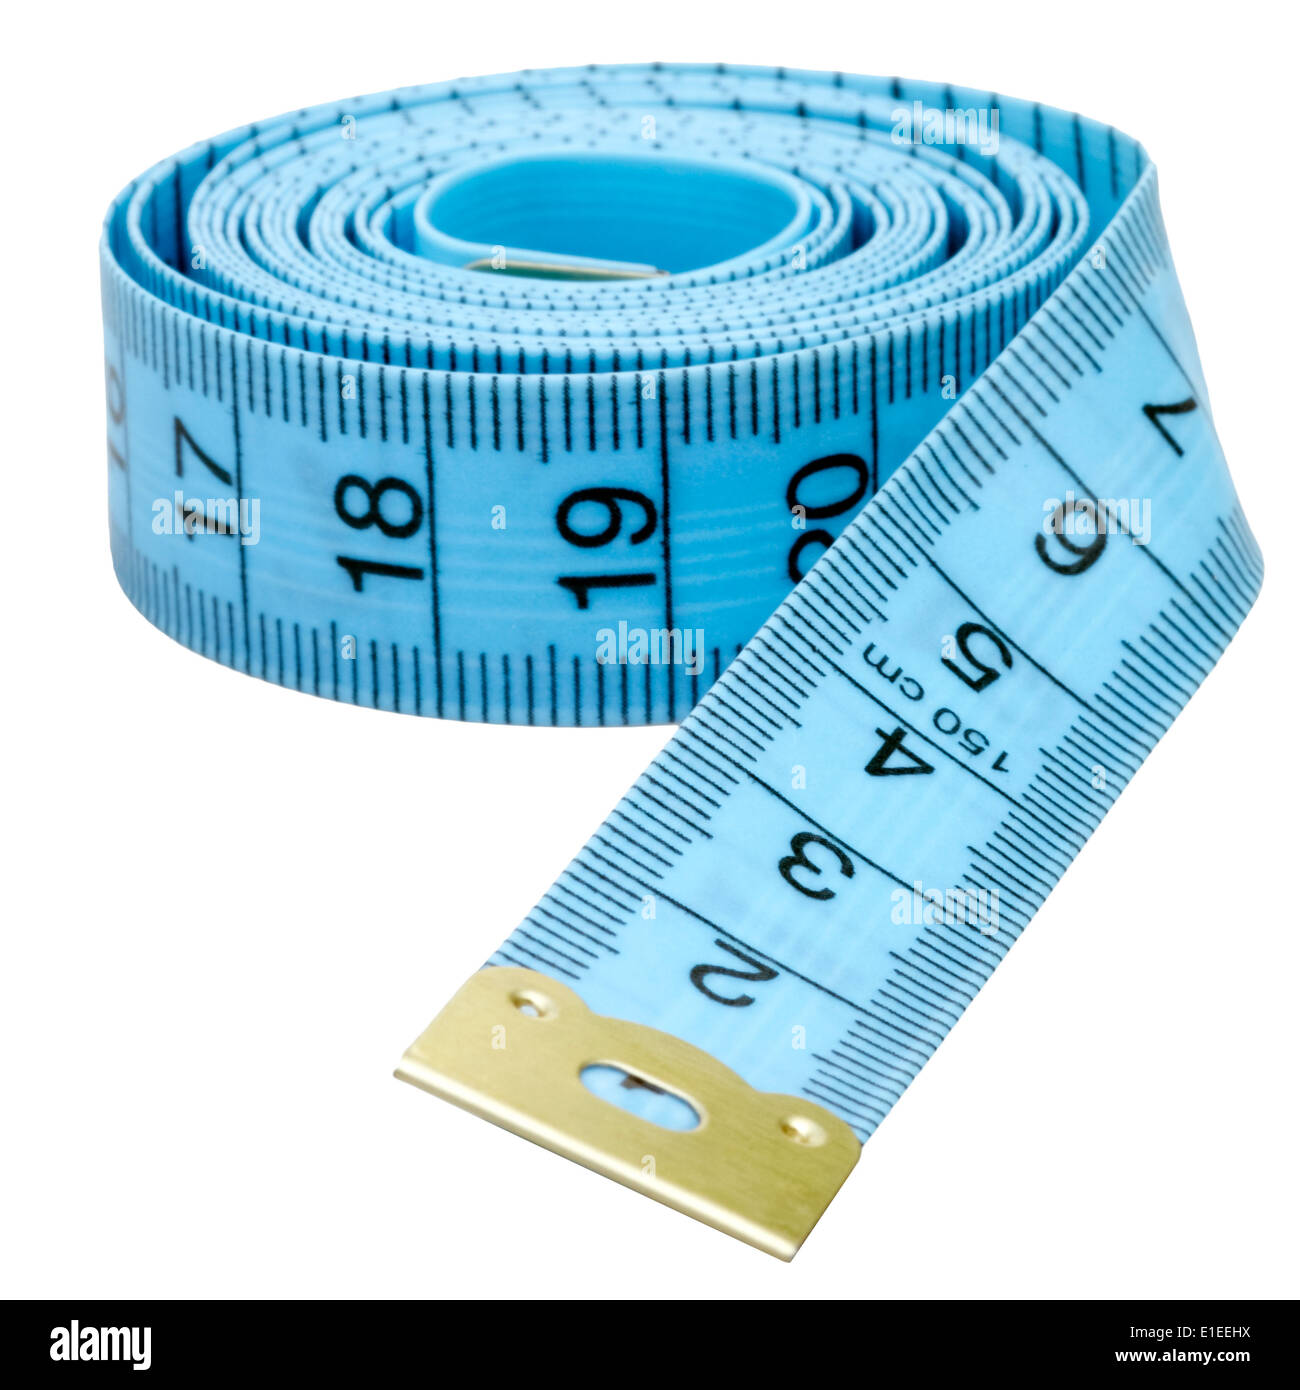 Tailors tape measure cut out against a white background. Blue measuring tape. Stock Photo